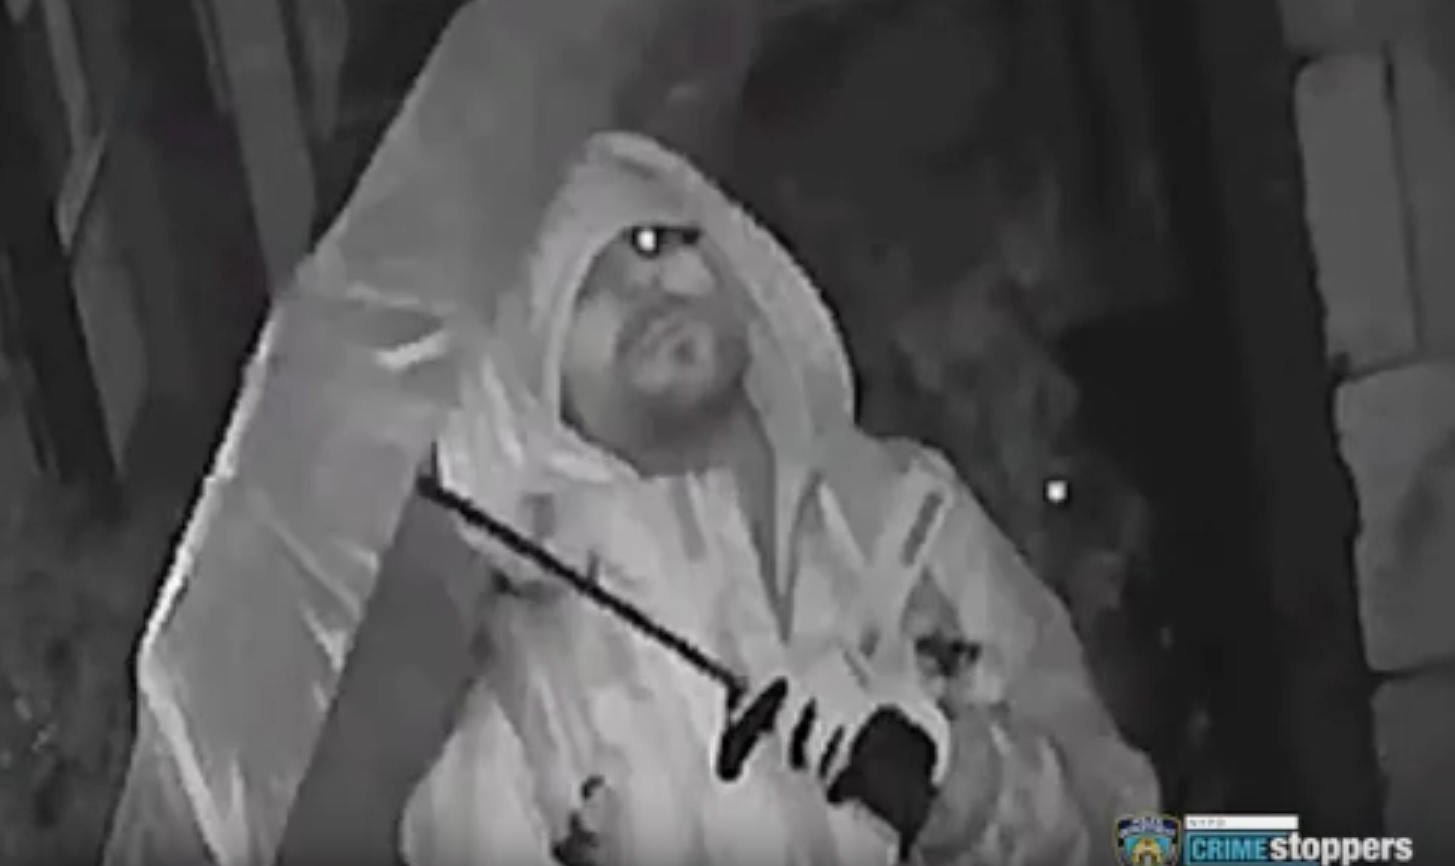 Image via NYPD 114th Precinct/NYPD Crime Stoppers surveillance video.